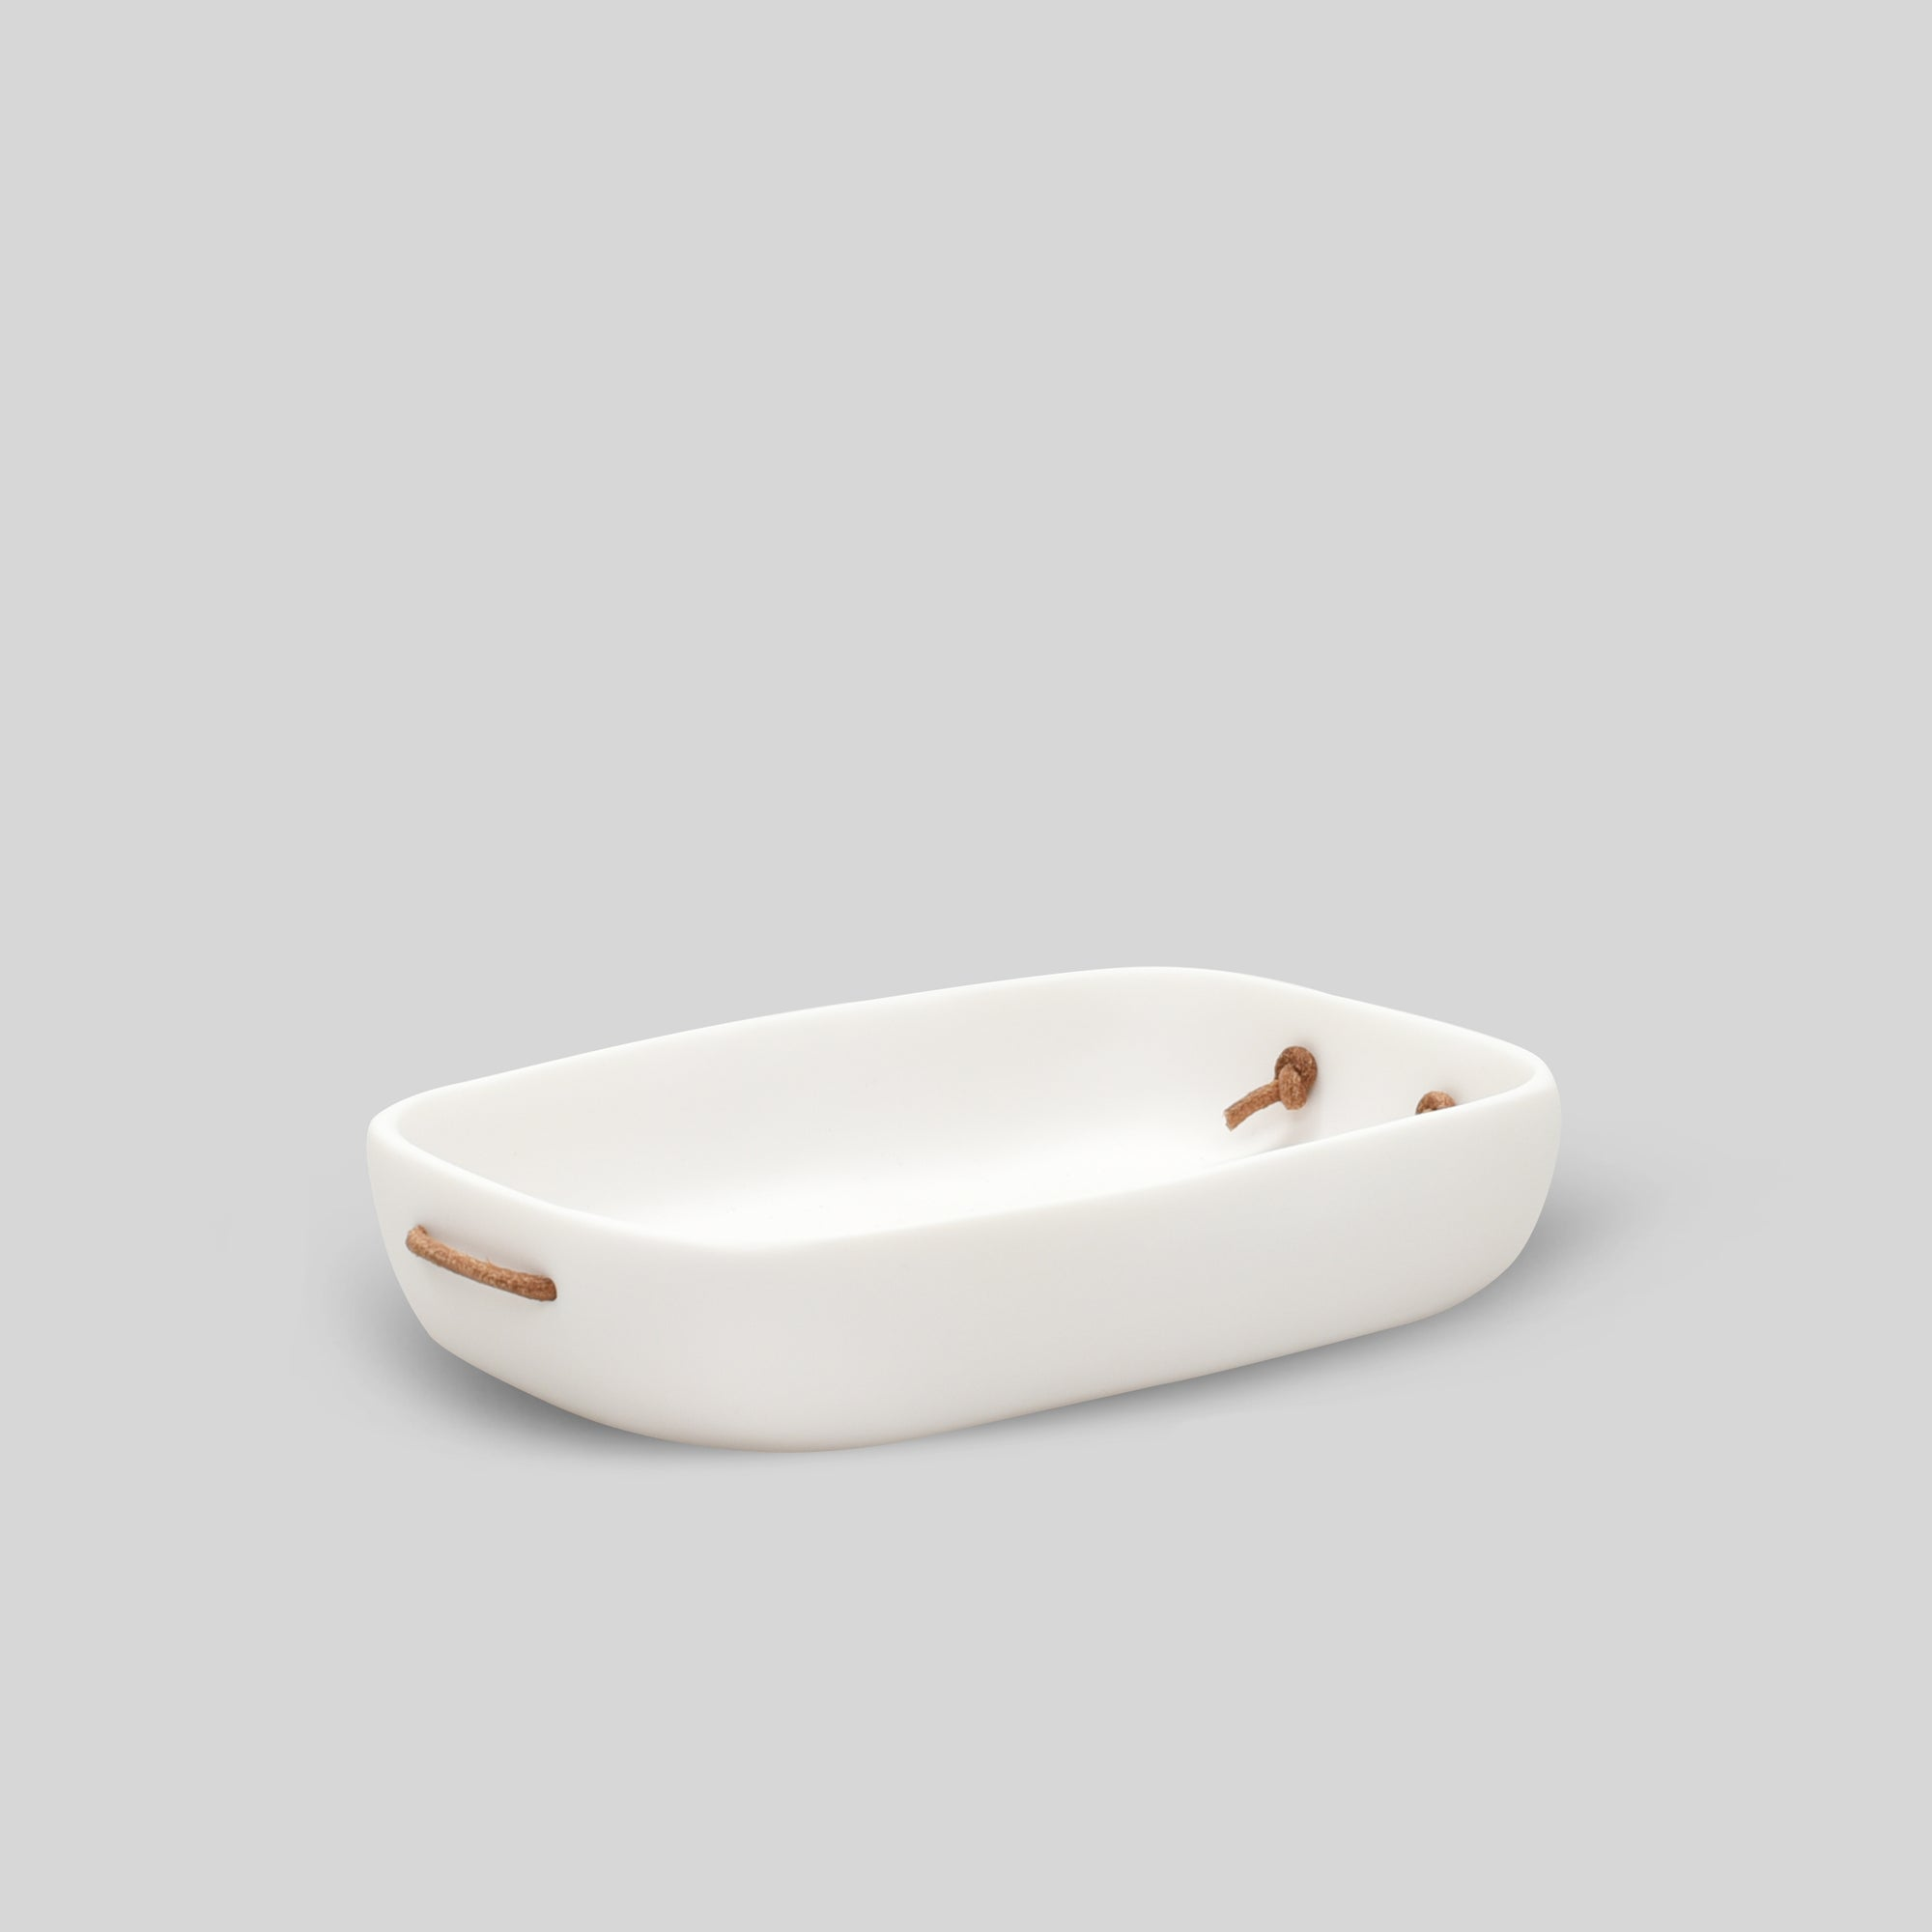 Water Bath Guest Towel Tray- White